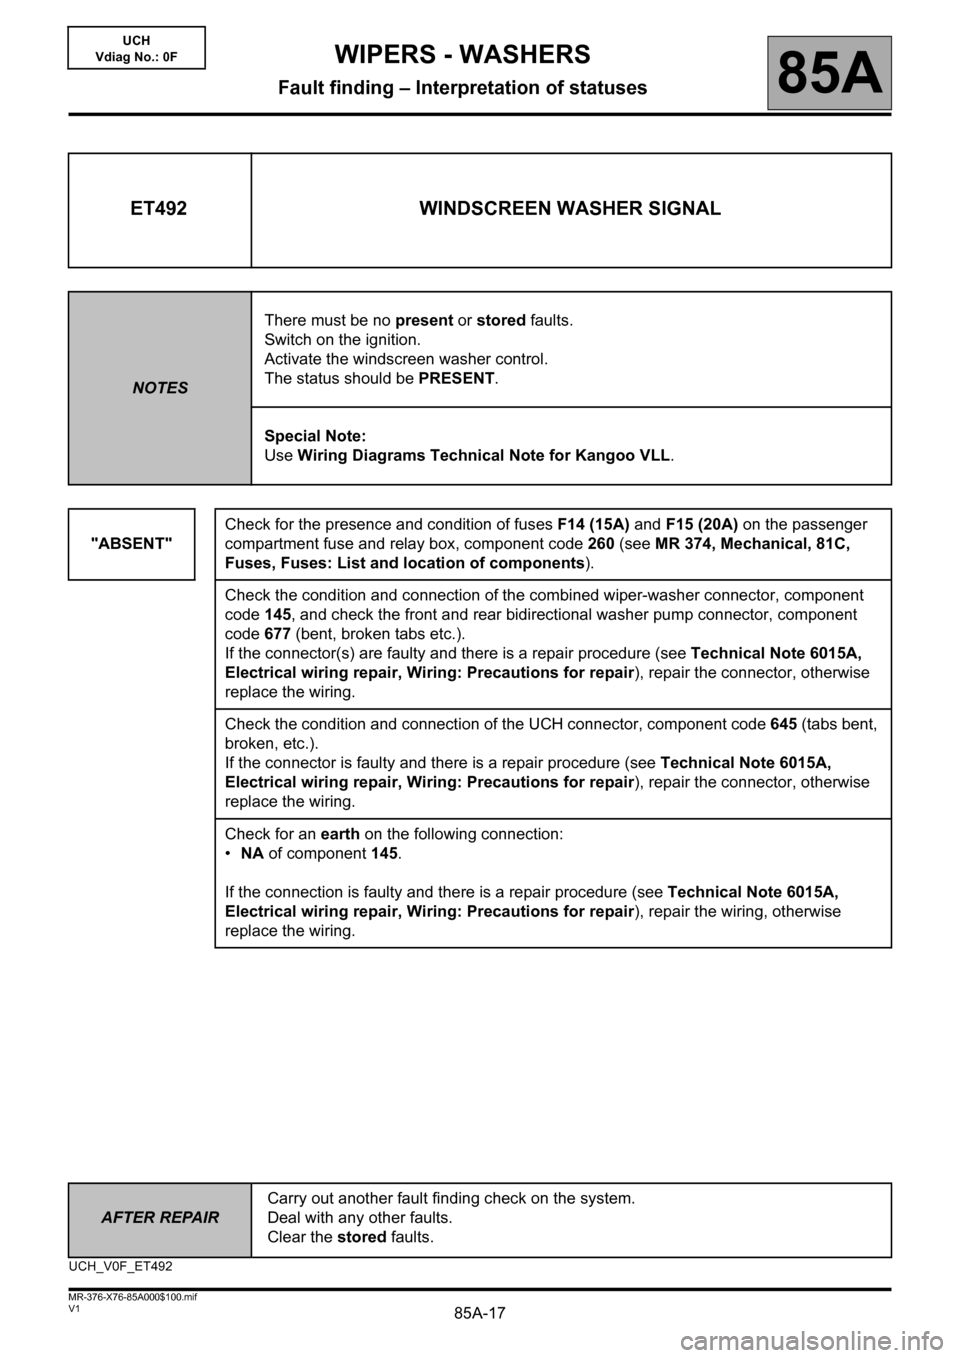 RENAULT KANGOO 2013 X61 / 2.G Wipers And Washers Workshop Manual, Page 17